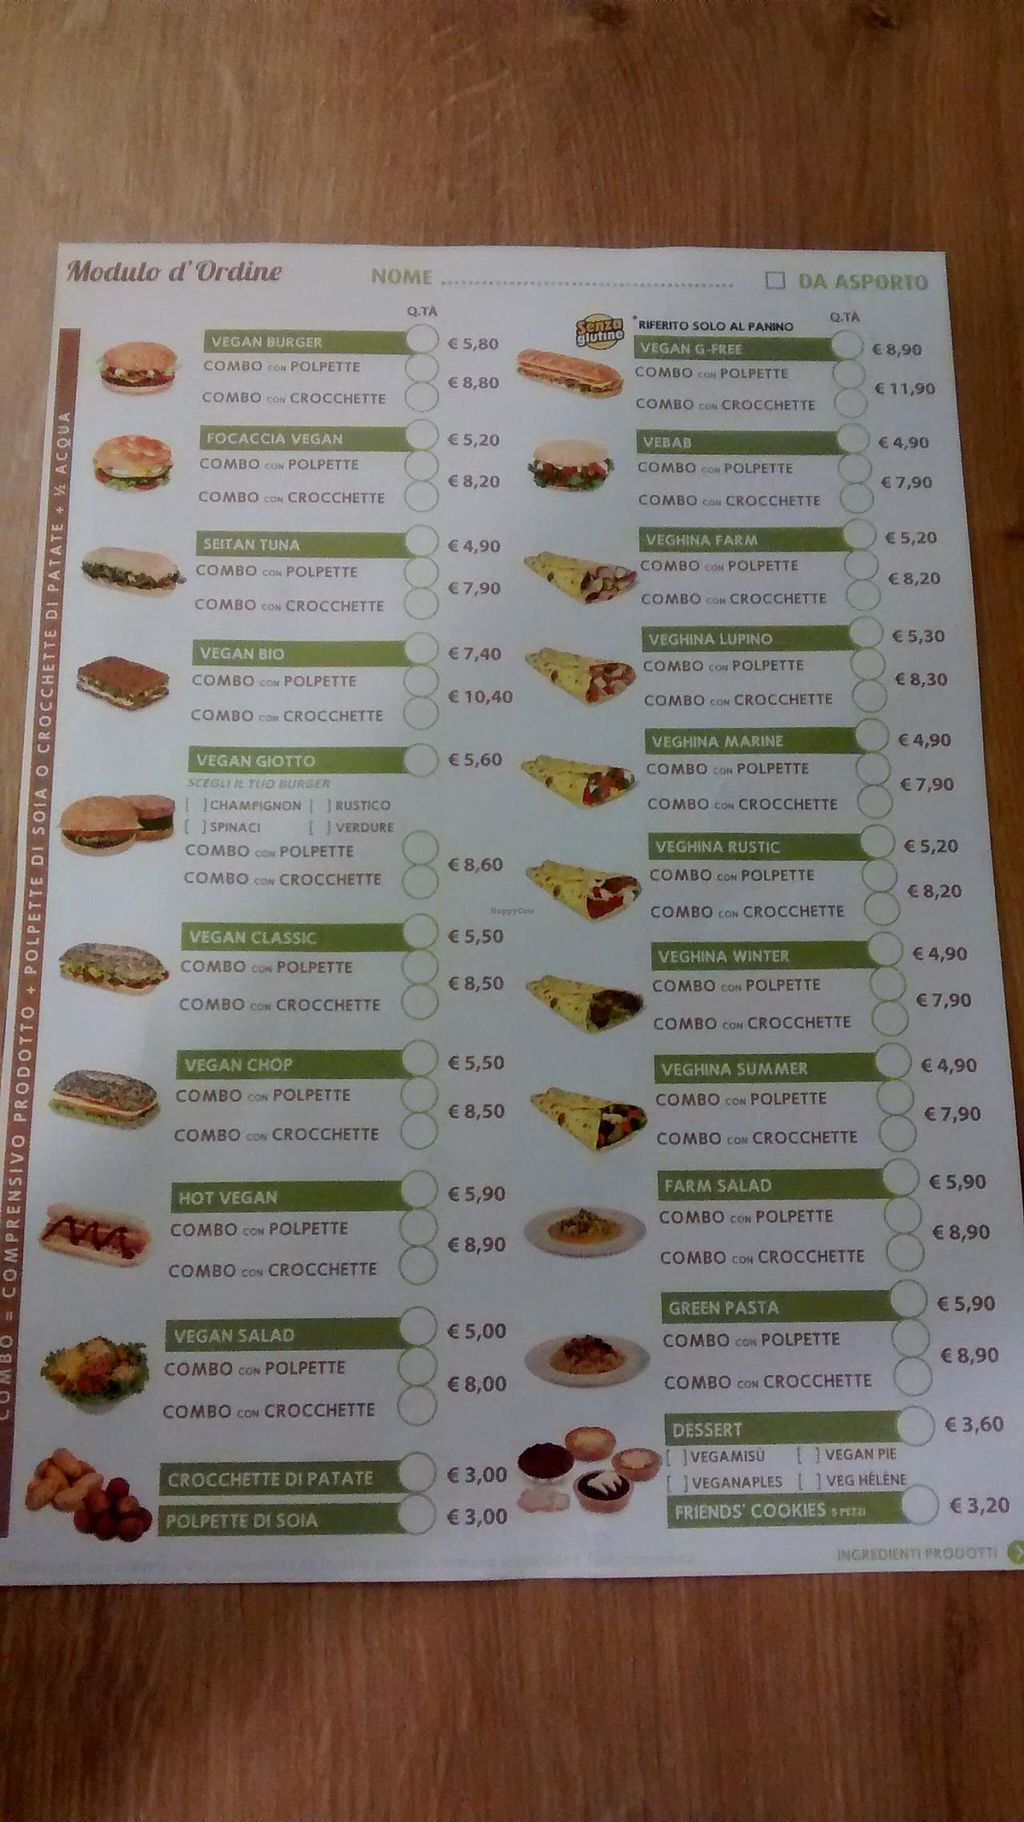 """Photo of Universo Vegano  by <a href=""""/members/profile/JonJon"""">JonJon</a> <br/>Menu as of September 20, 2014 <br/> September 22, 2014  - <a href='/contact/abuse/image/47226/80707'>Report</a>"""